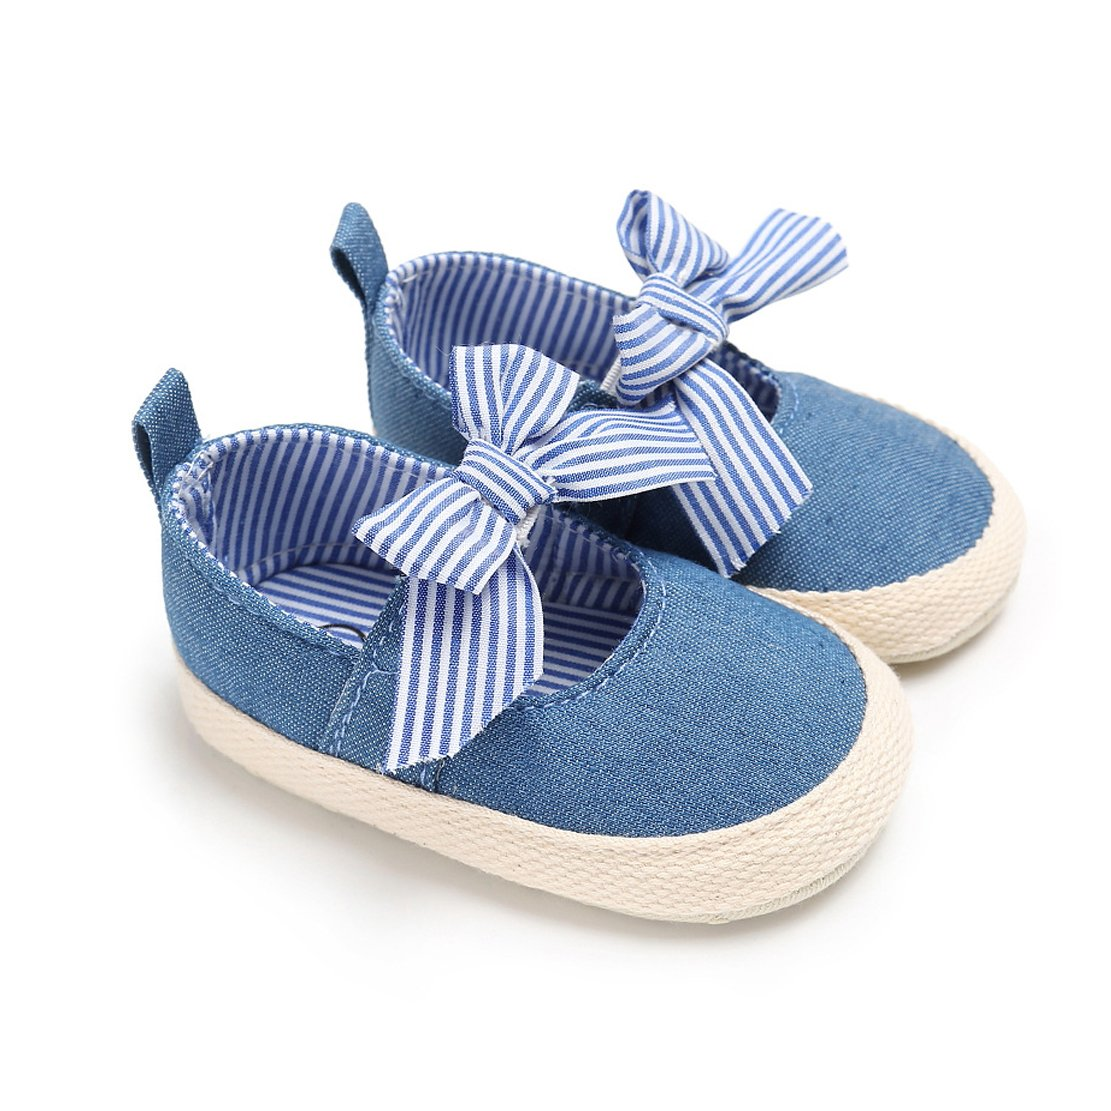 cheap genuine Tumble White Slip-On Style Baby Booties - 3 to 9 Months many kinds of sale online shop offer for sale Vf7Rel